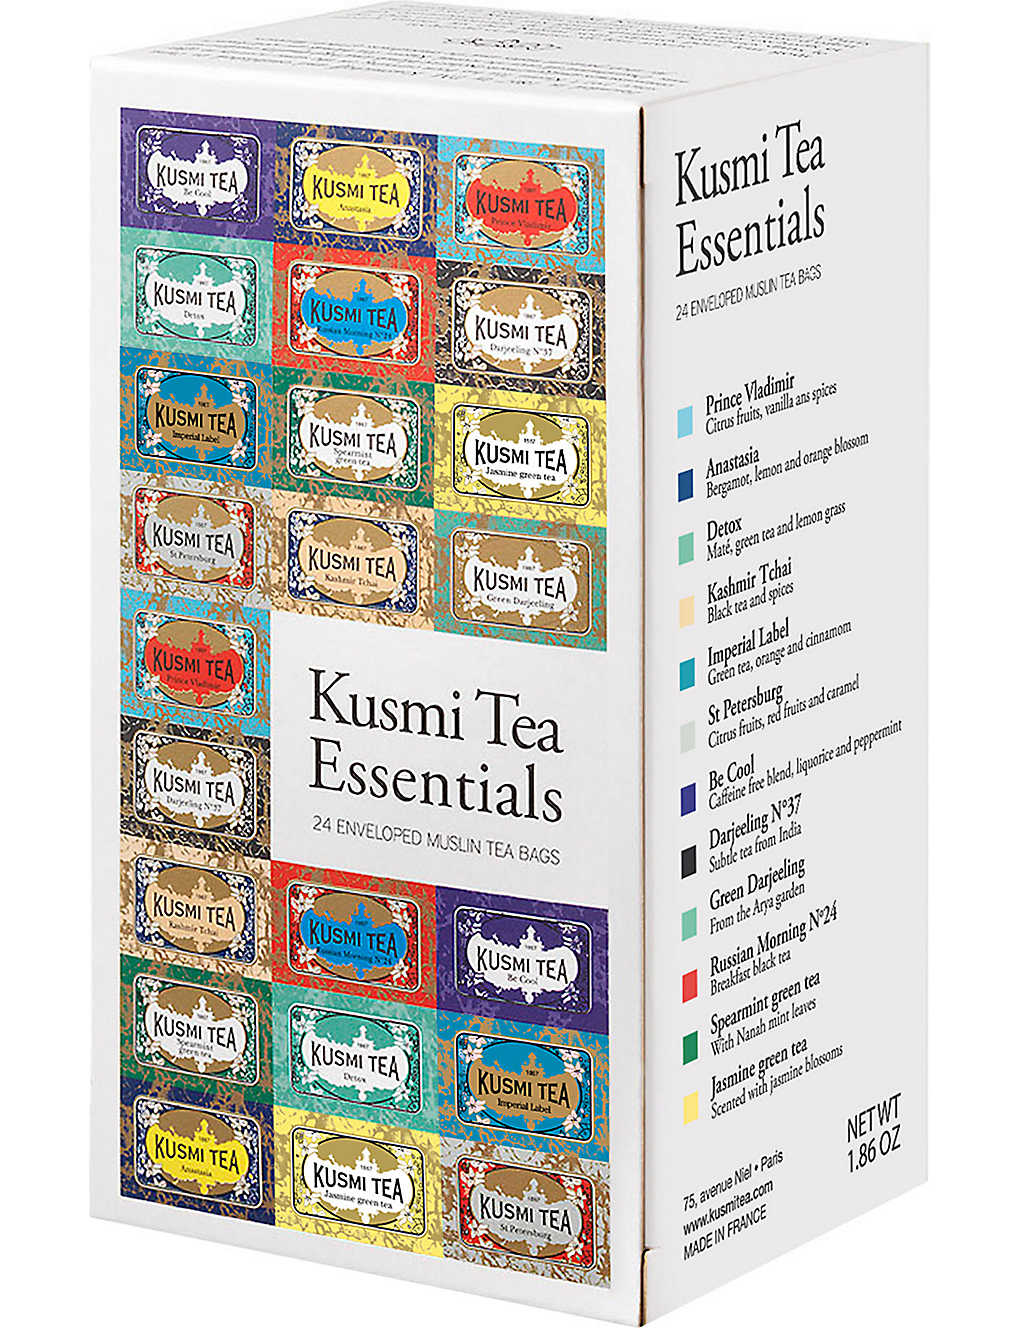 KUSMI TEA: Tea Essentials gift box 52.8g box of 12